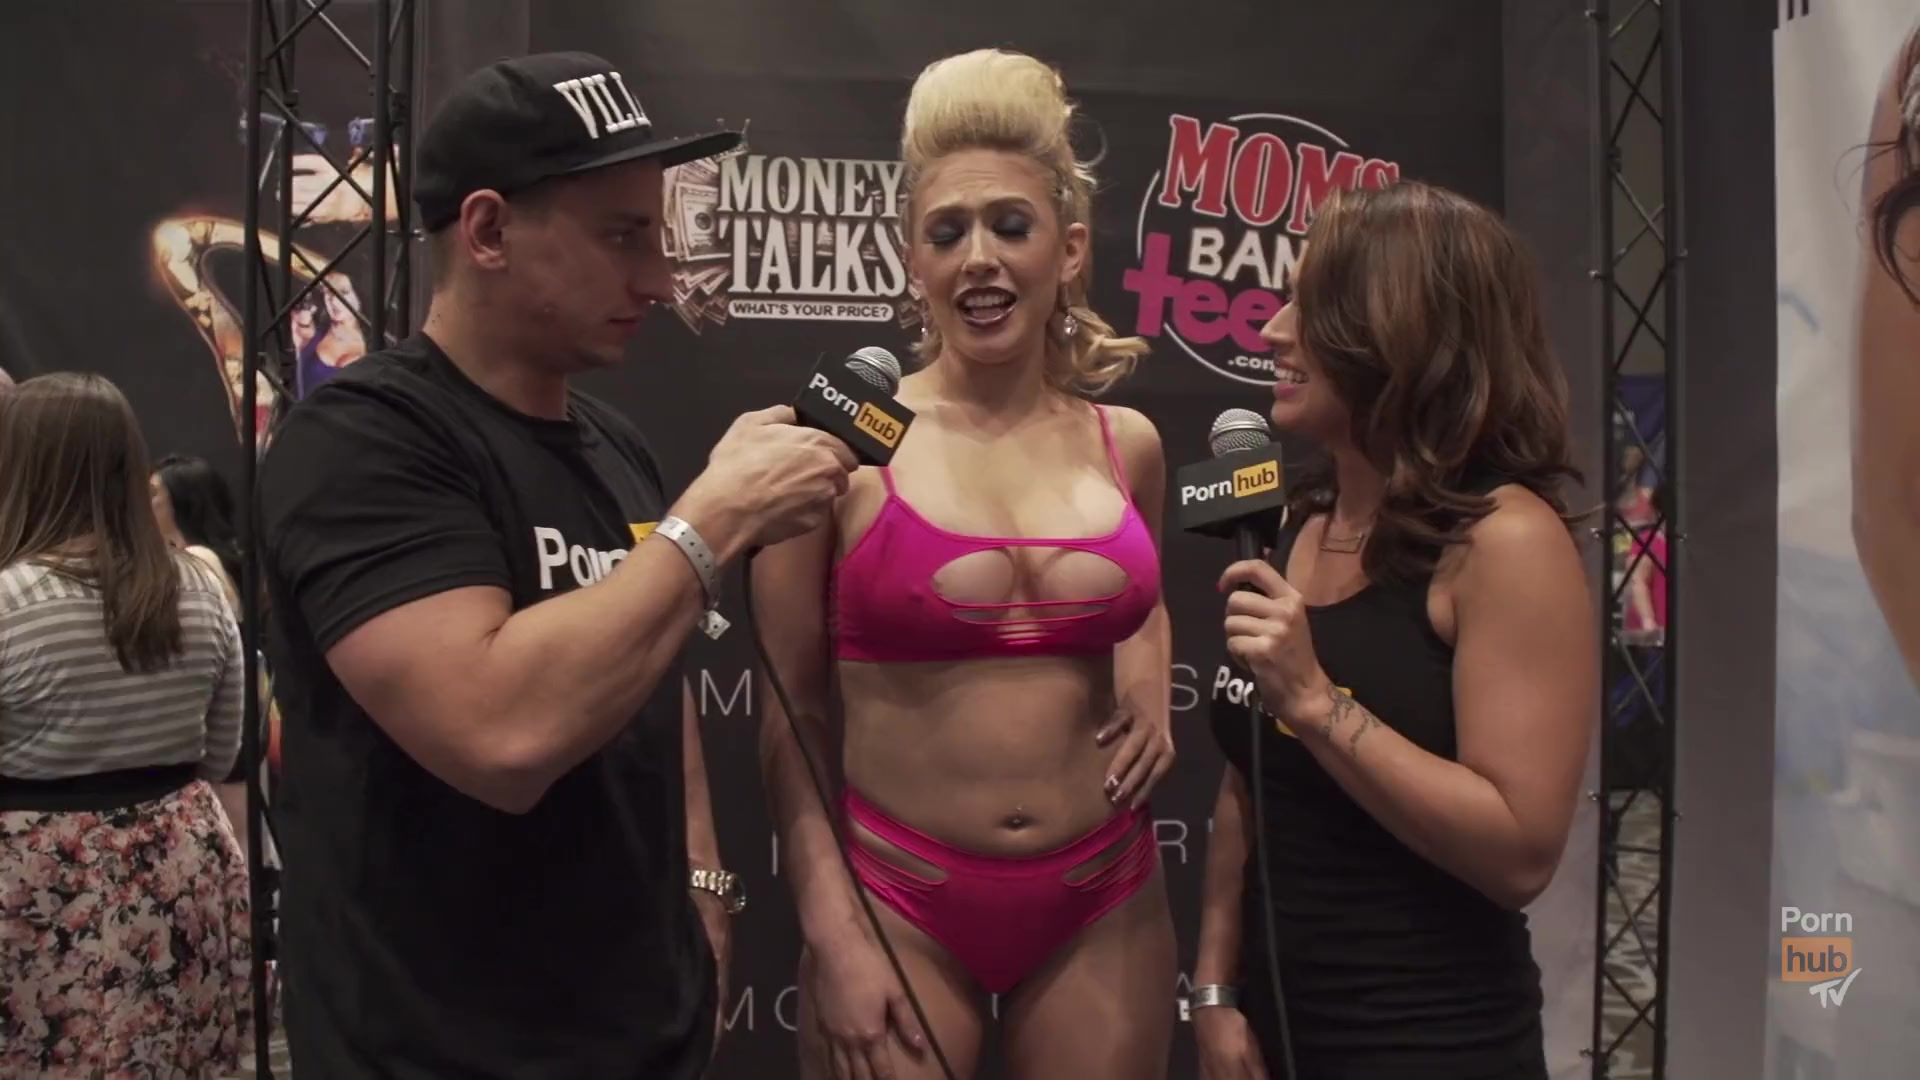 Vitaly zd at avn 2016 with phoenix marie and karla kush interviews 2